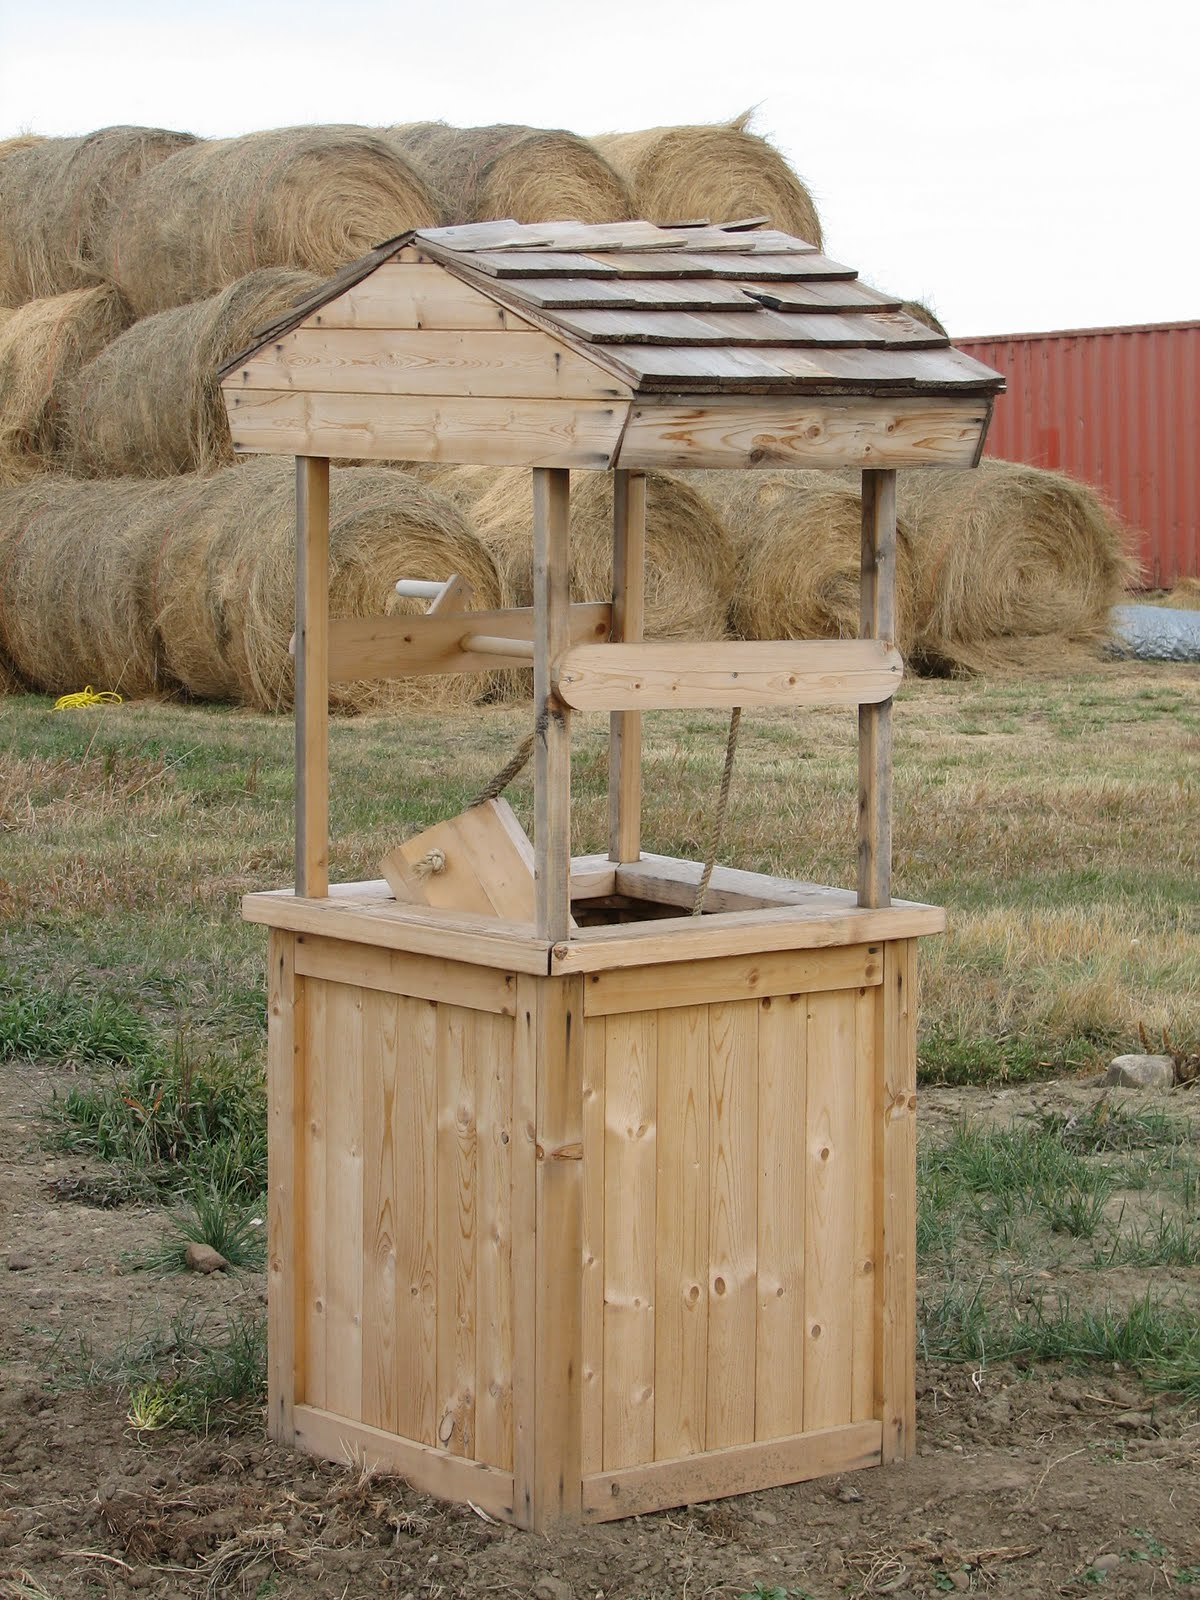 Woodworking Projects Plans: Ranch Riding: Wood Projects